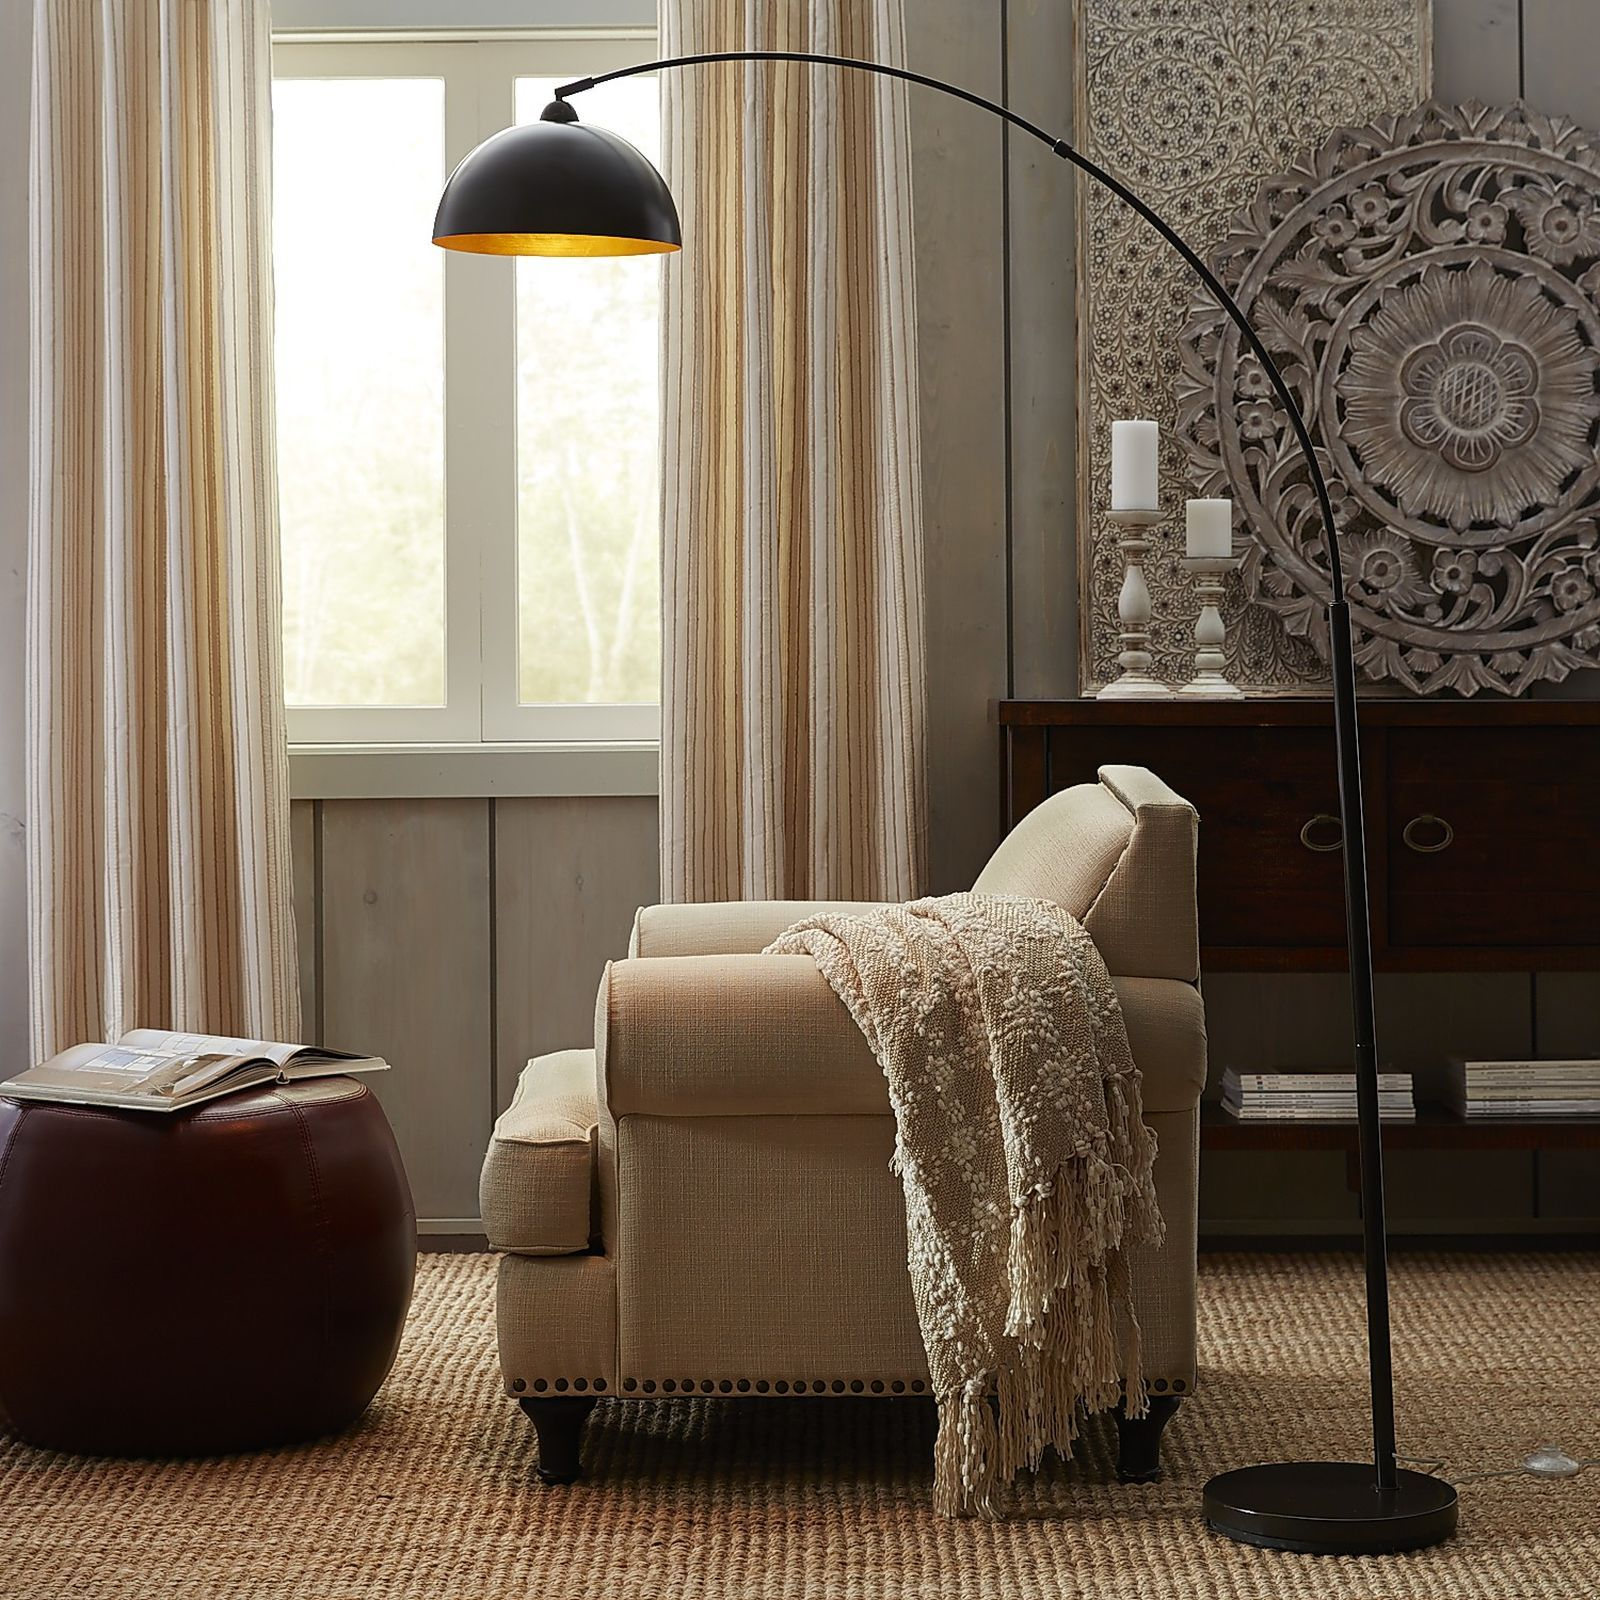 Perfect Reading Lamp For The Living Room